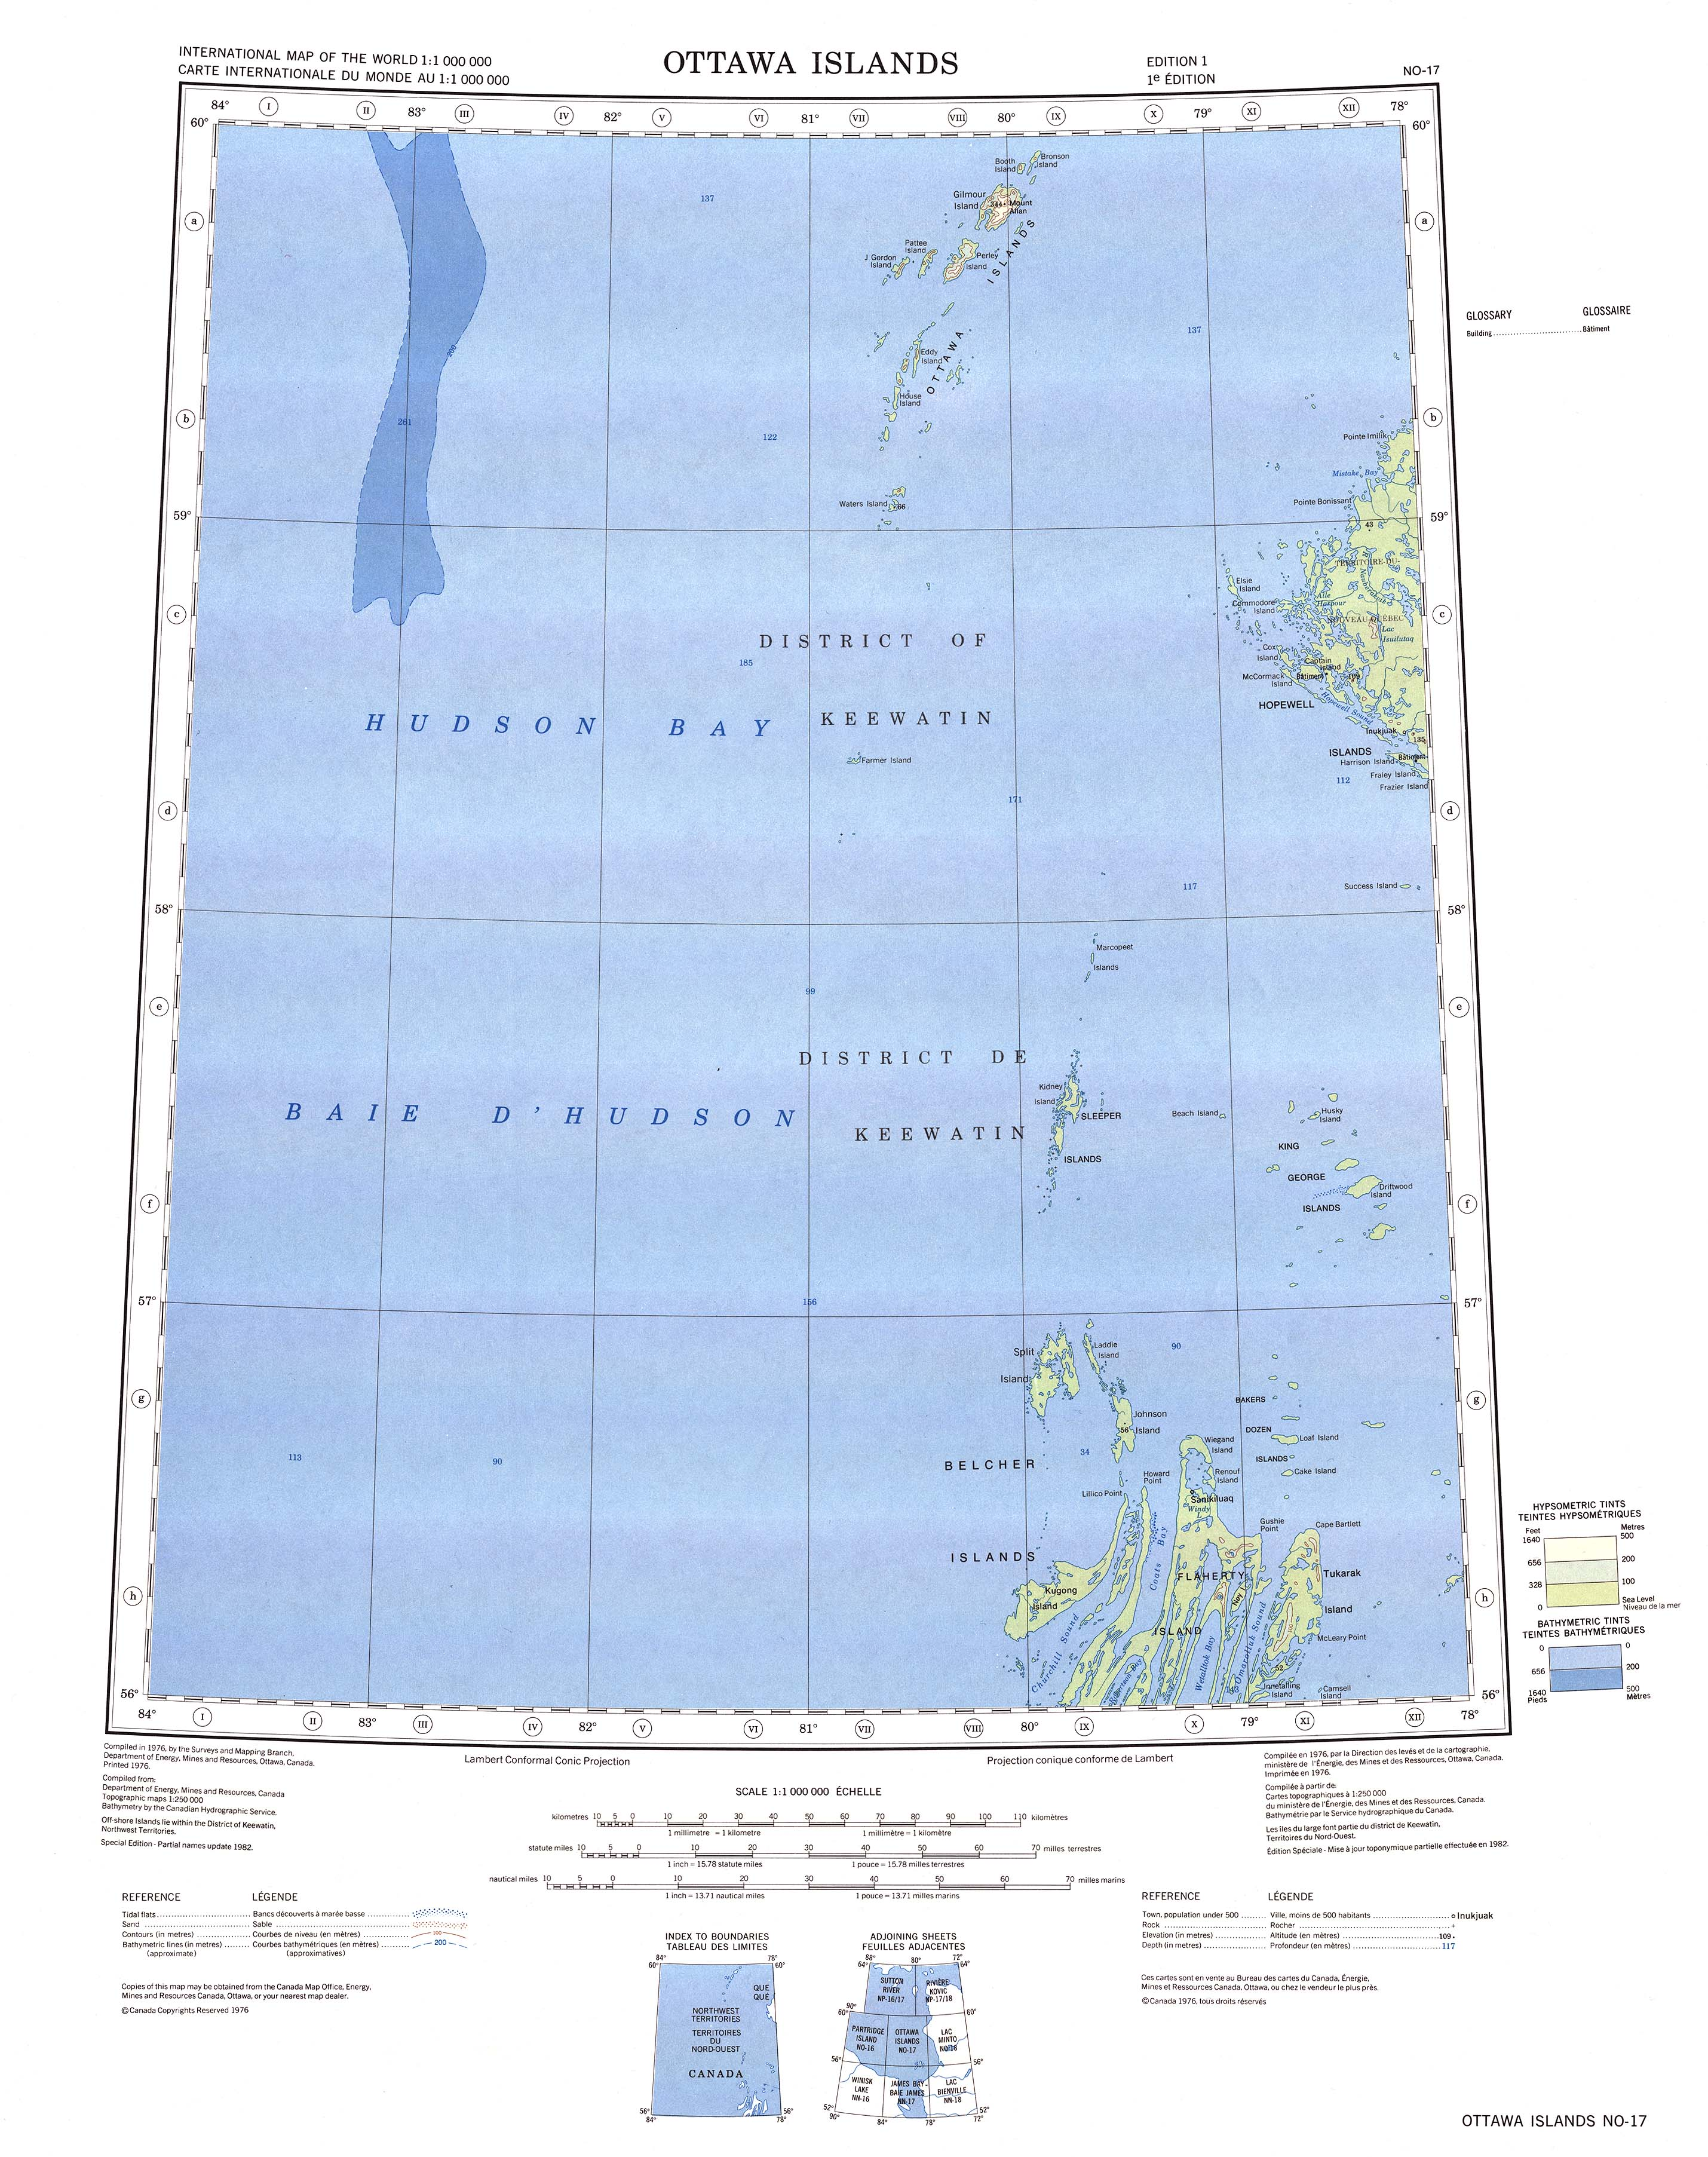 Ottawa islands map view online canada download full size map image ottawa islands map imw gumiabroncs Choice Image